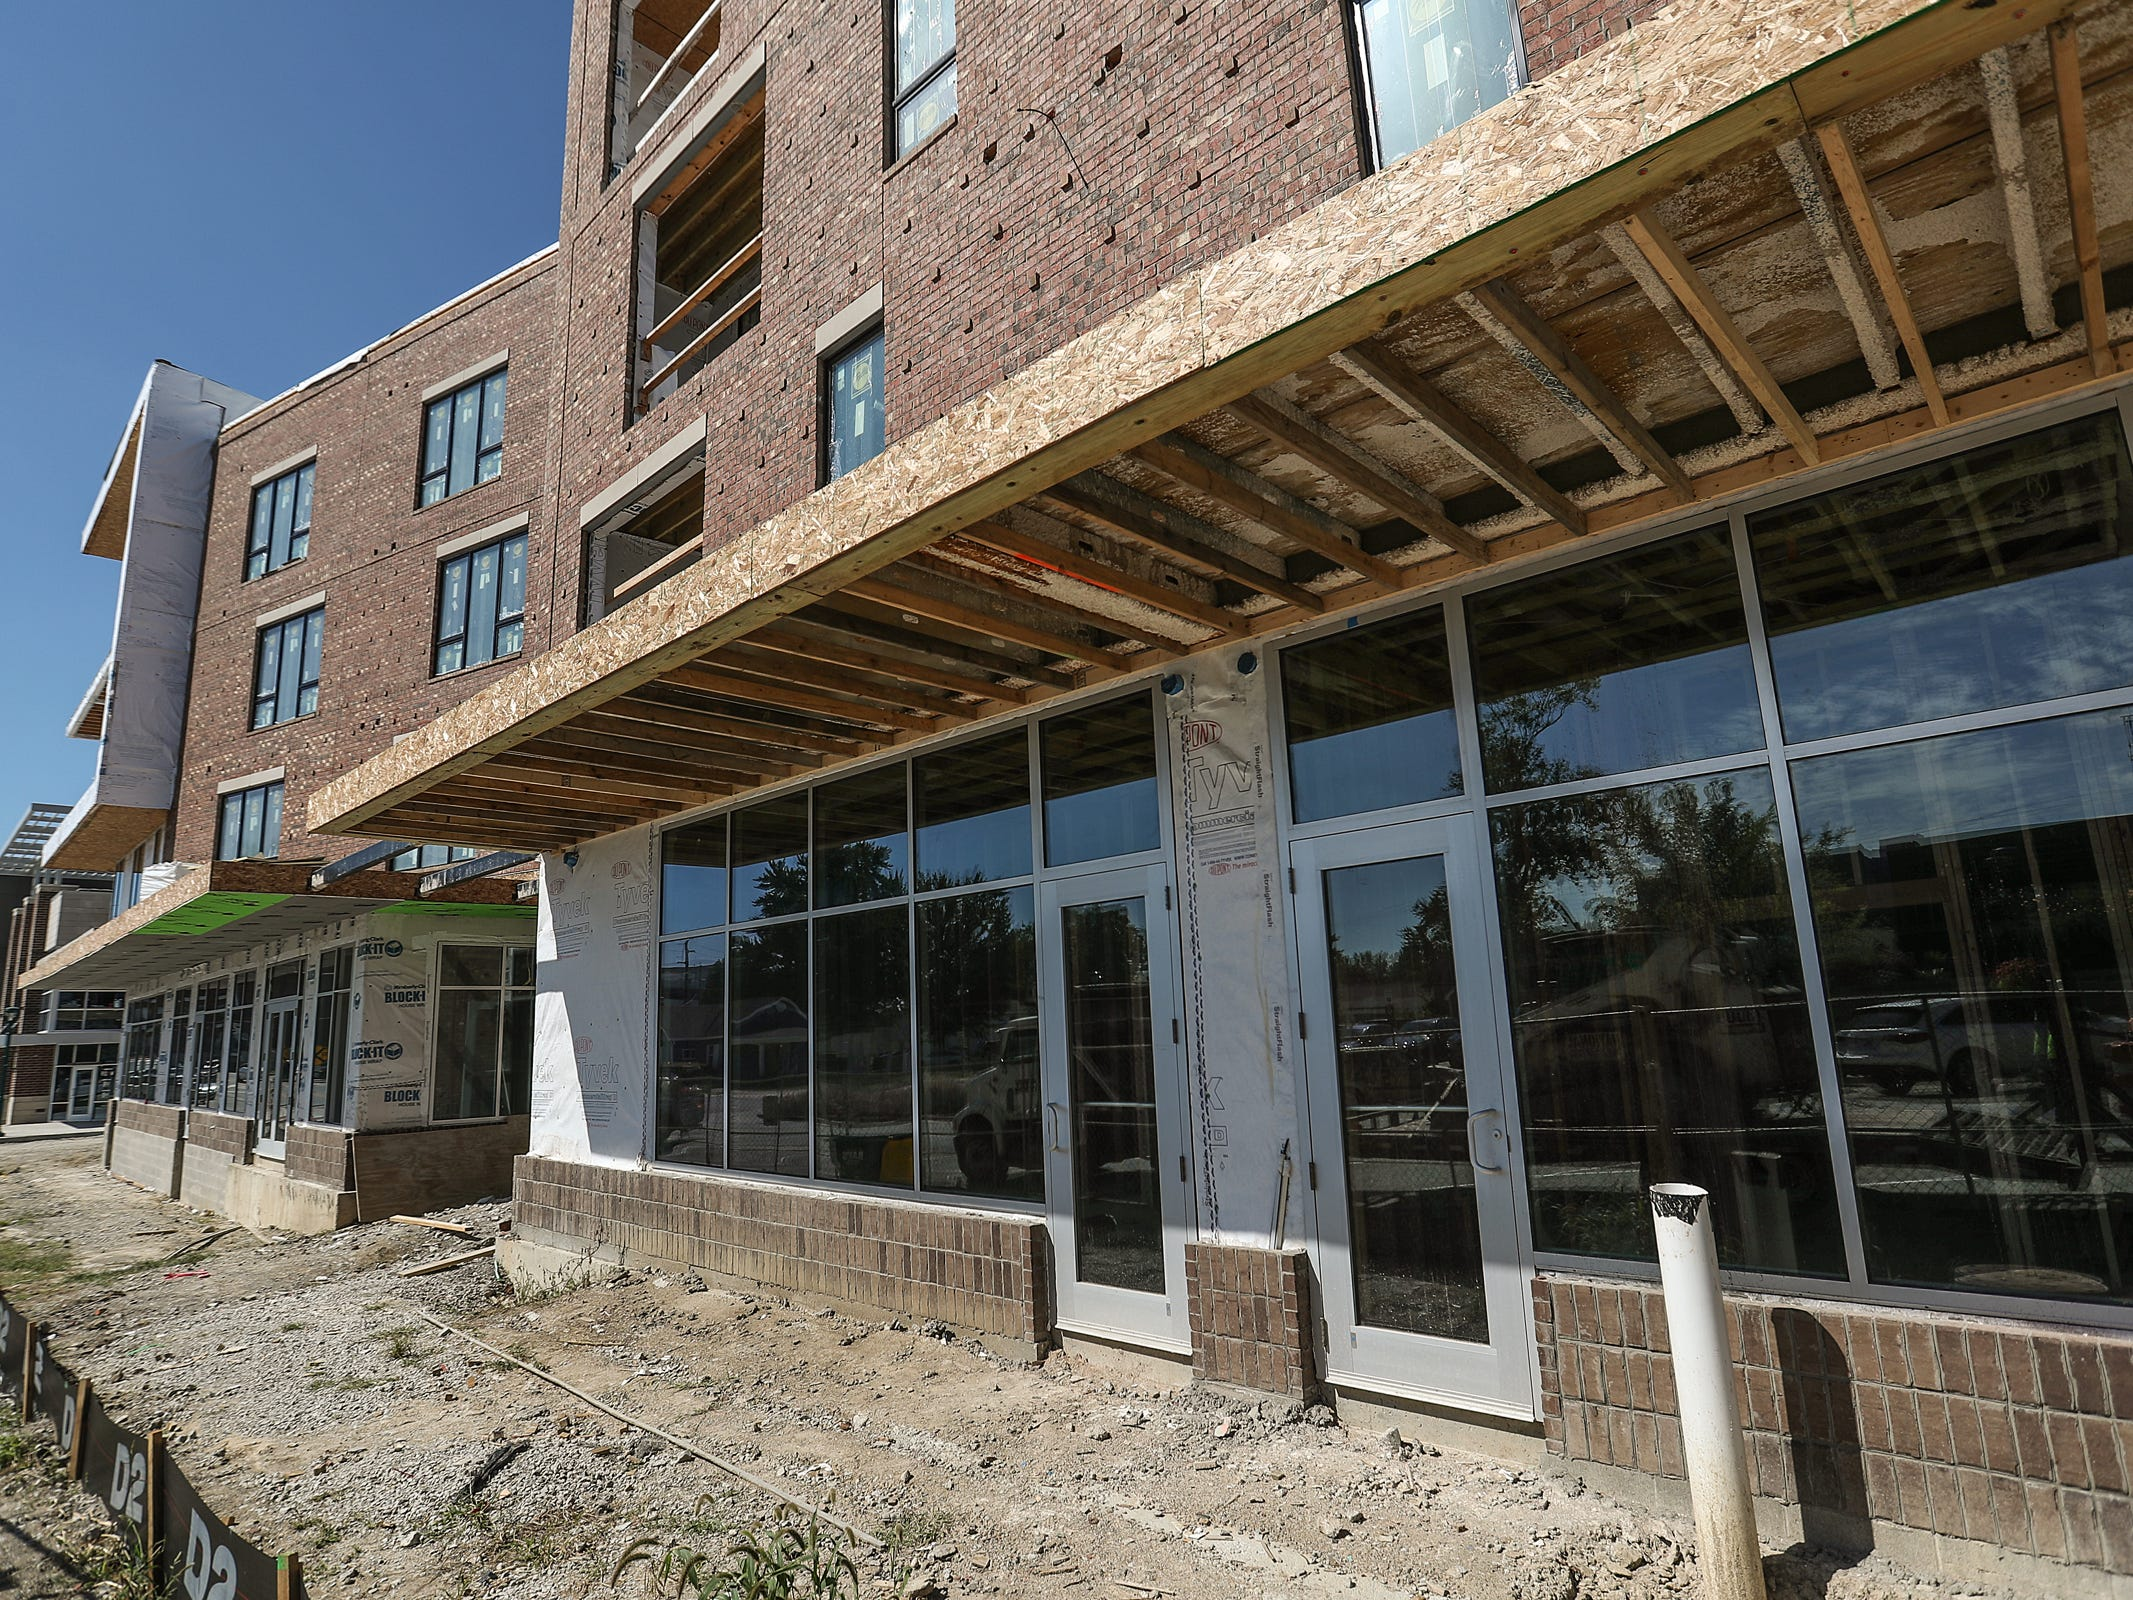 Retail space storefronts at Spark Apartments in Fishers, Ind., are seen on Friday, Sept. 14, 2018. The apartments, at North Street and Lantern road, will 200 offer one-, two- and three-bedroom apartment units and 11 live/work spaces, seen here.